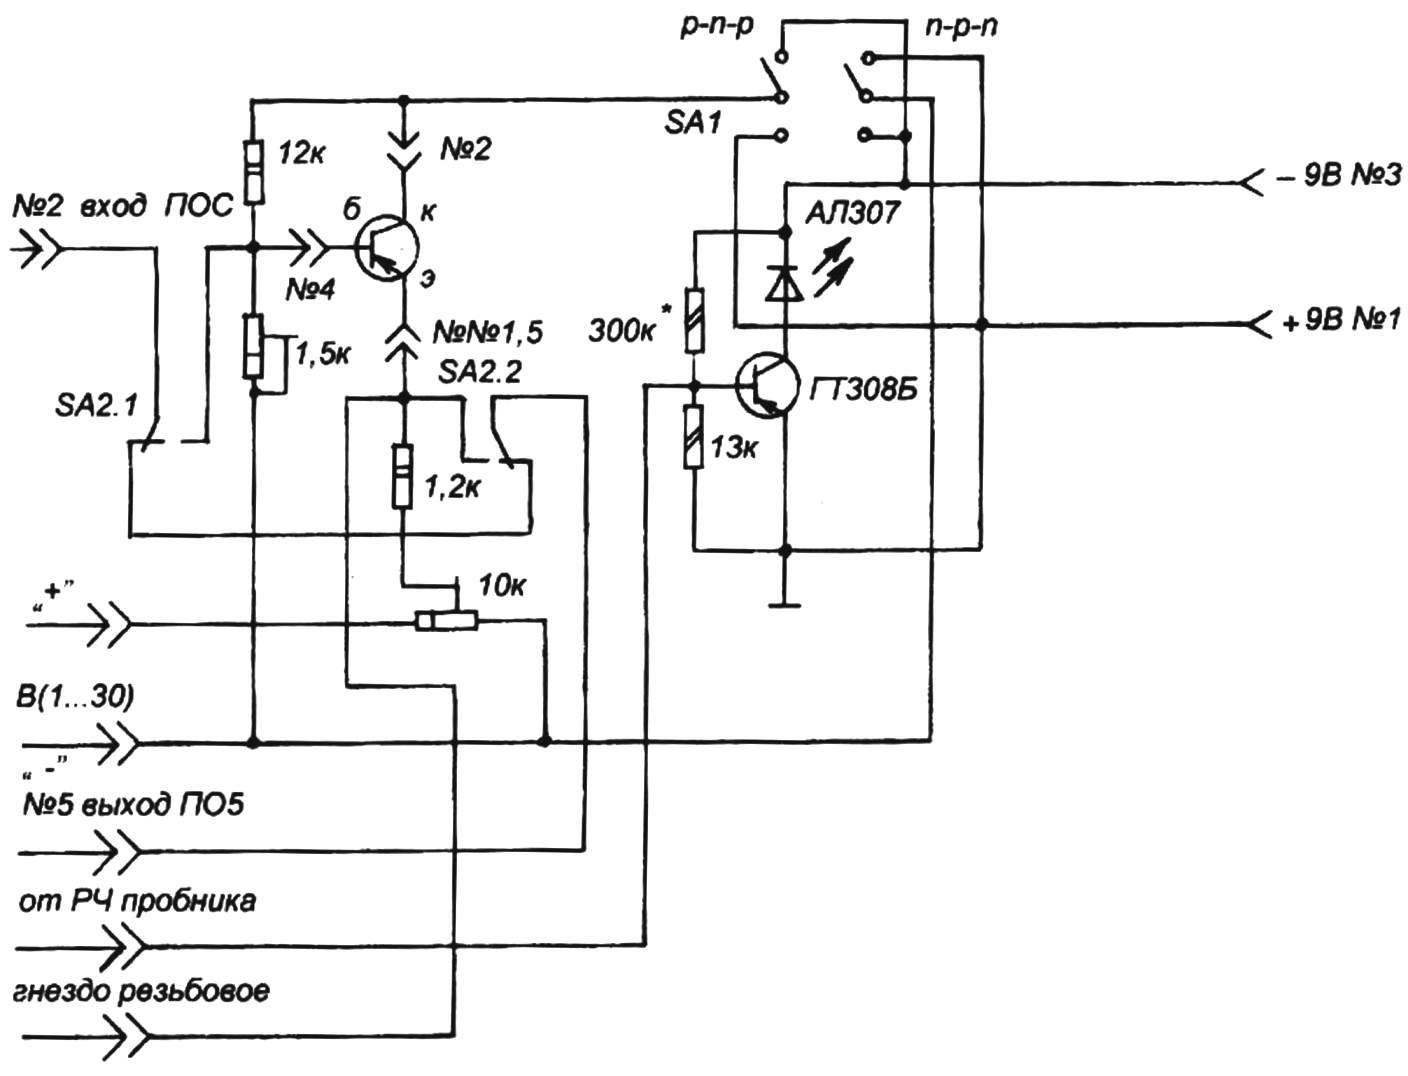 Diagram of the universal consoles